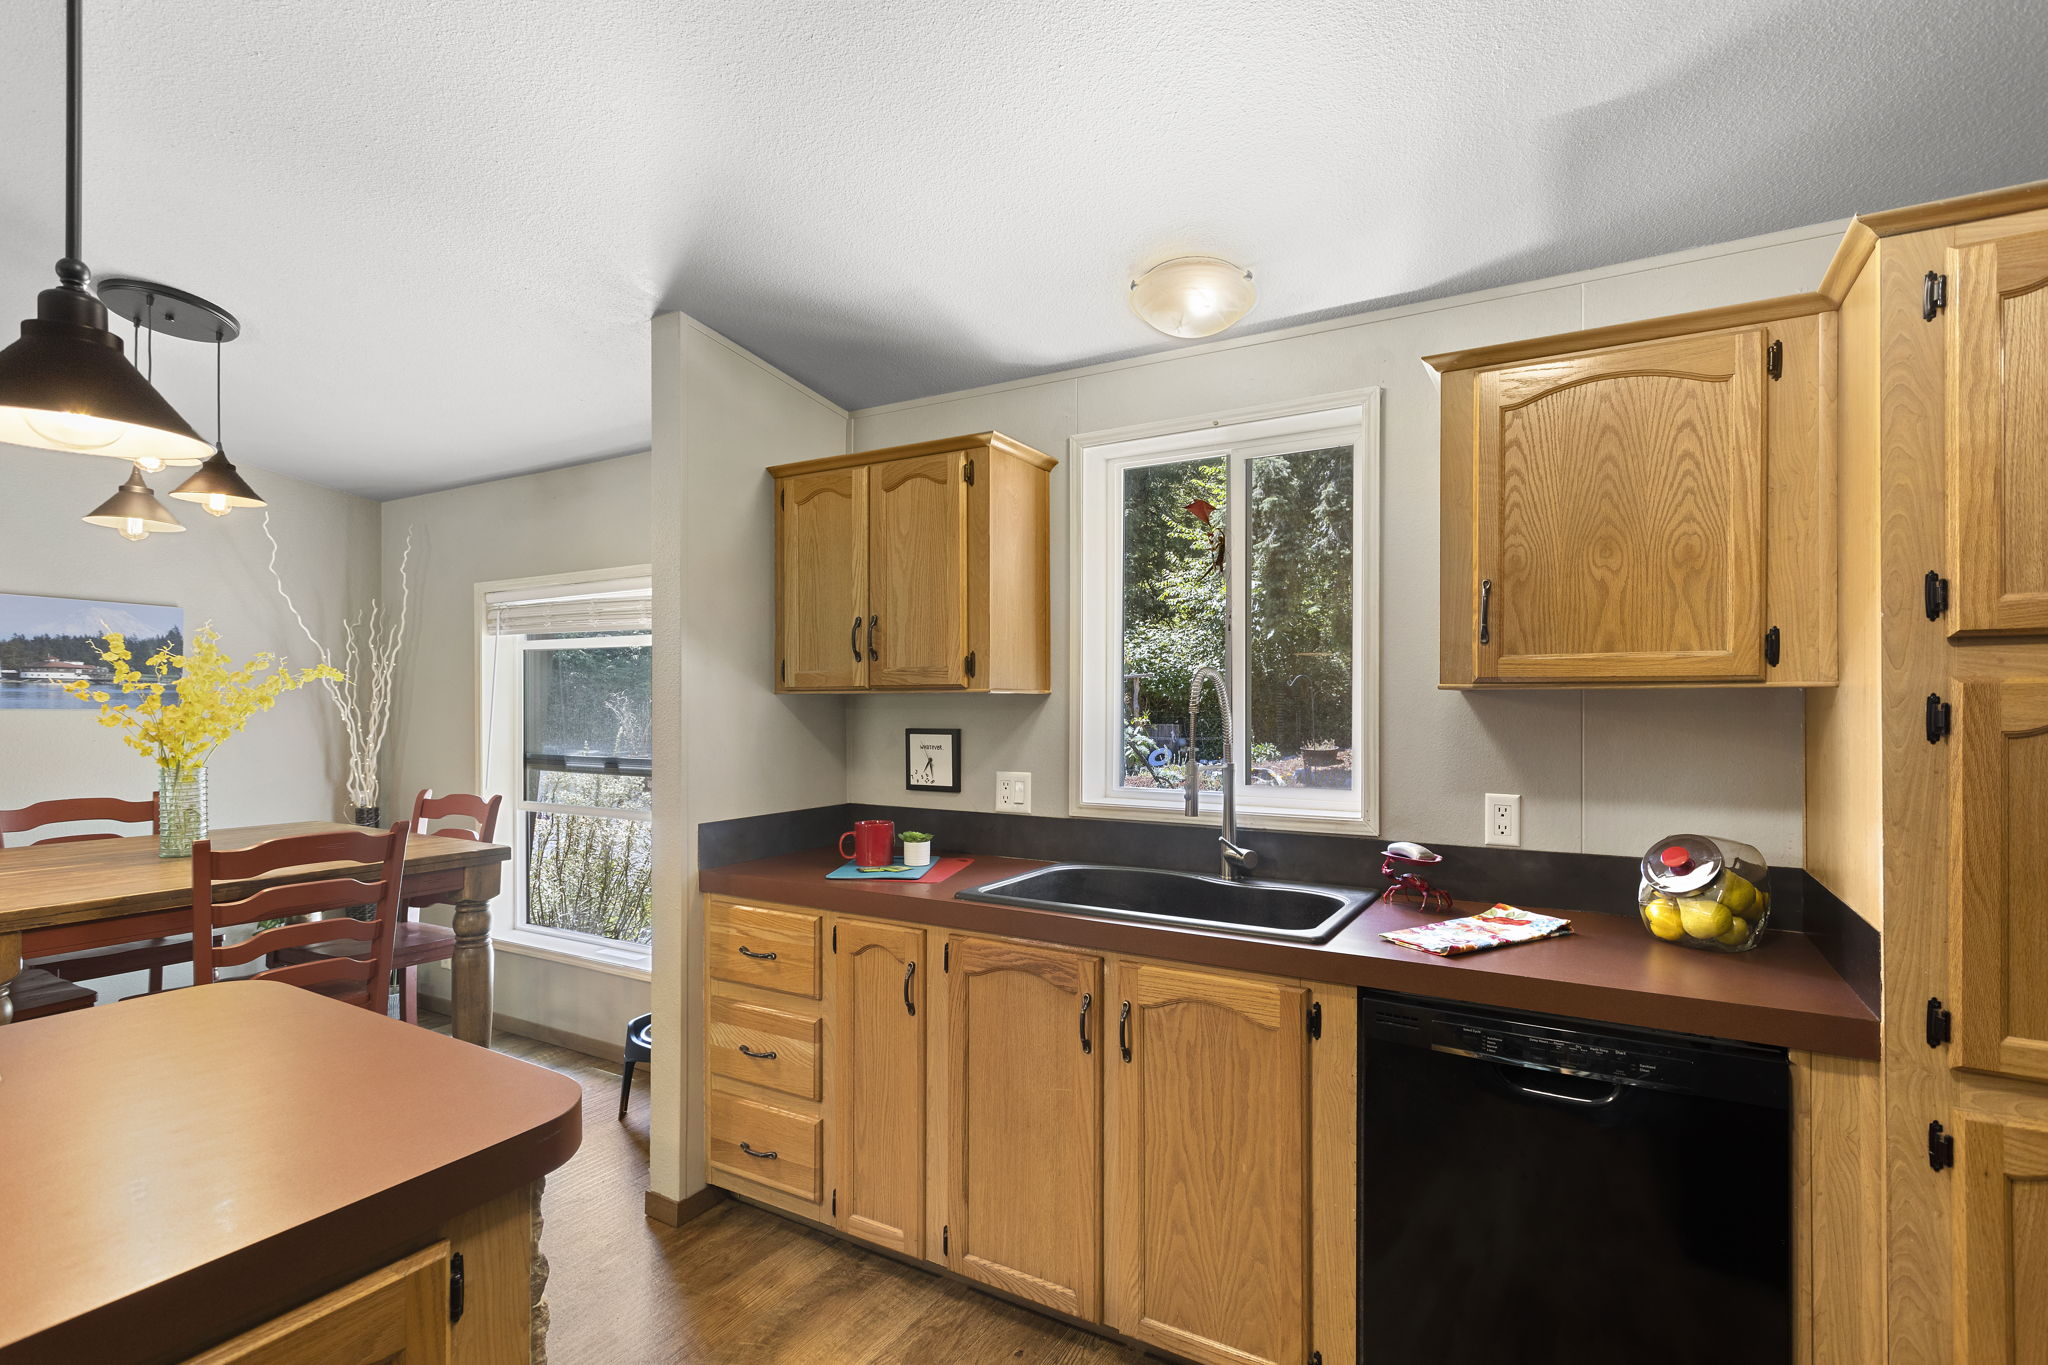 Large kitchen sink with window!